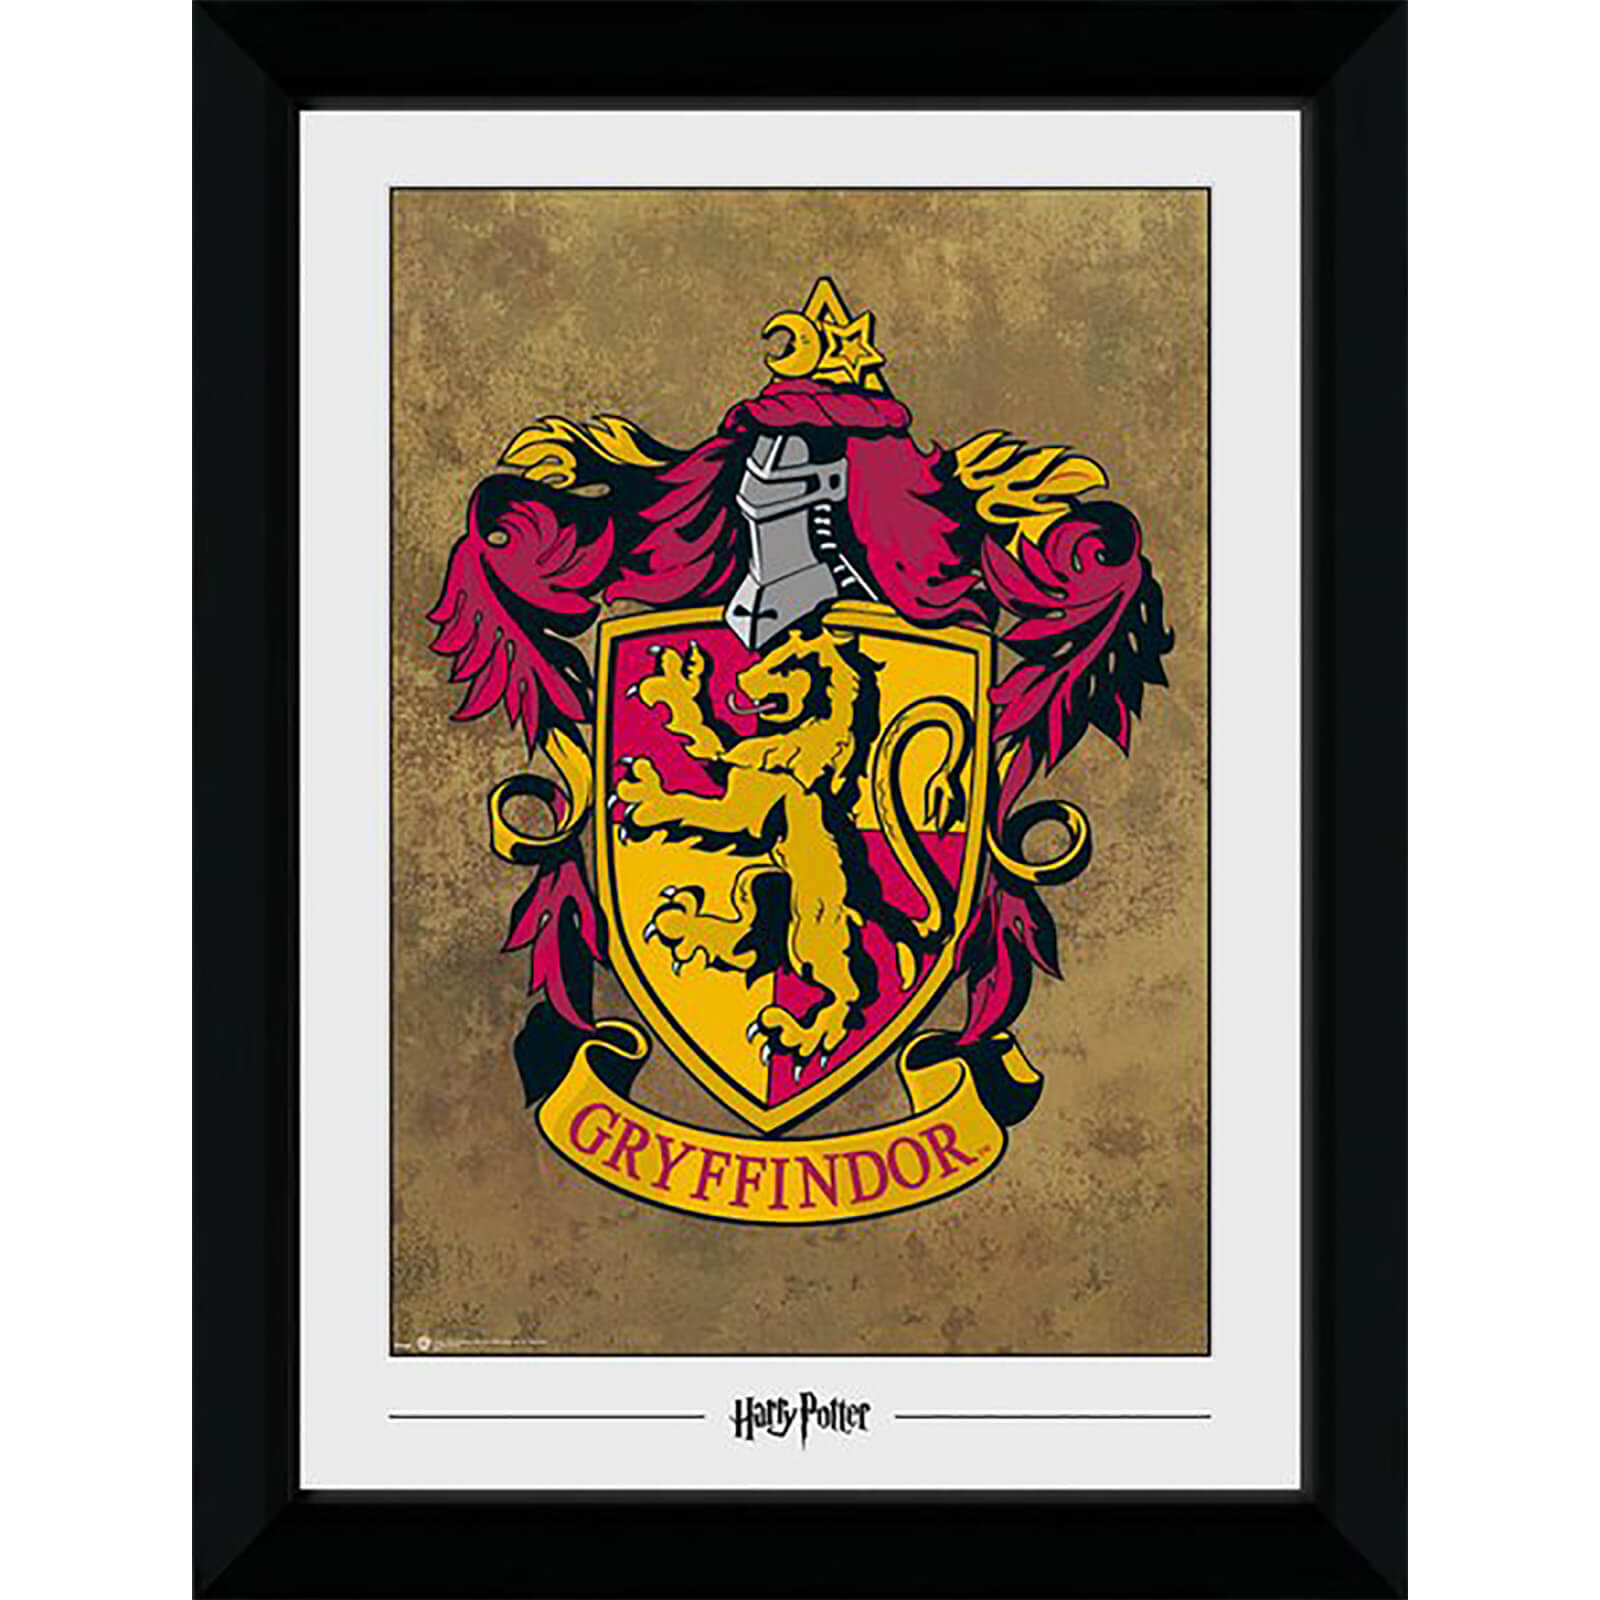 Harry Potter Gryffindor Collector